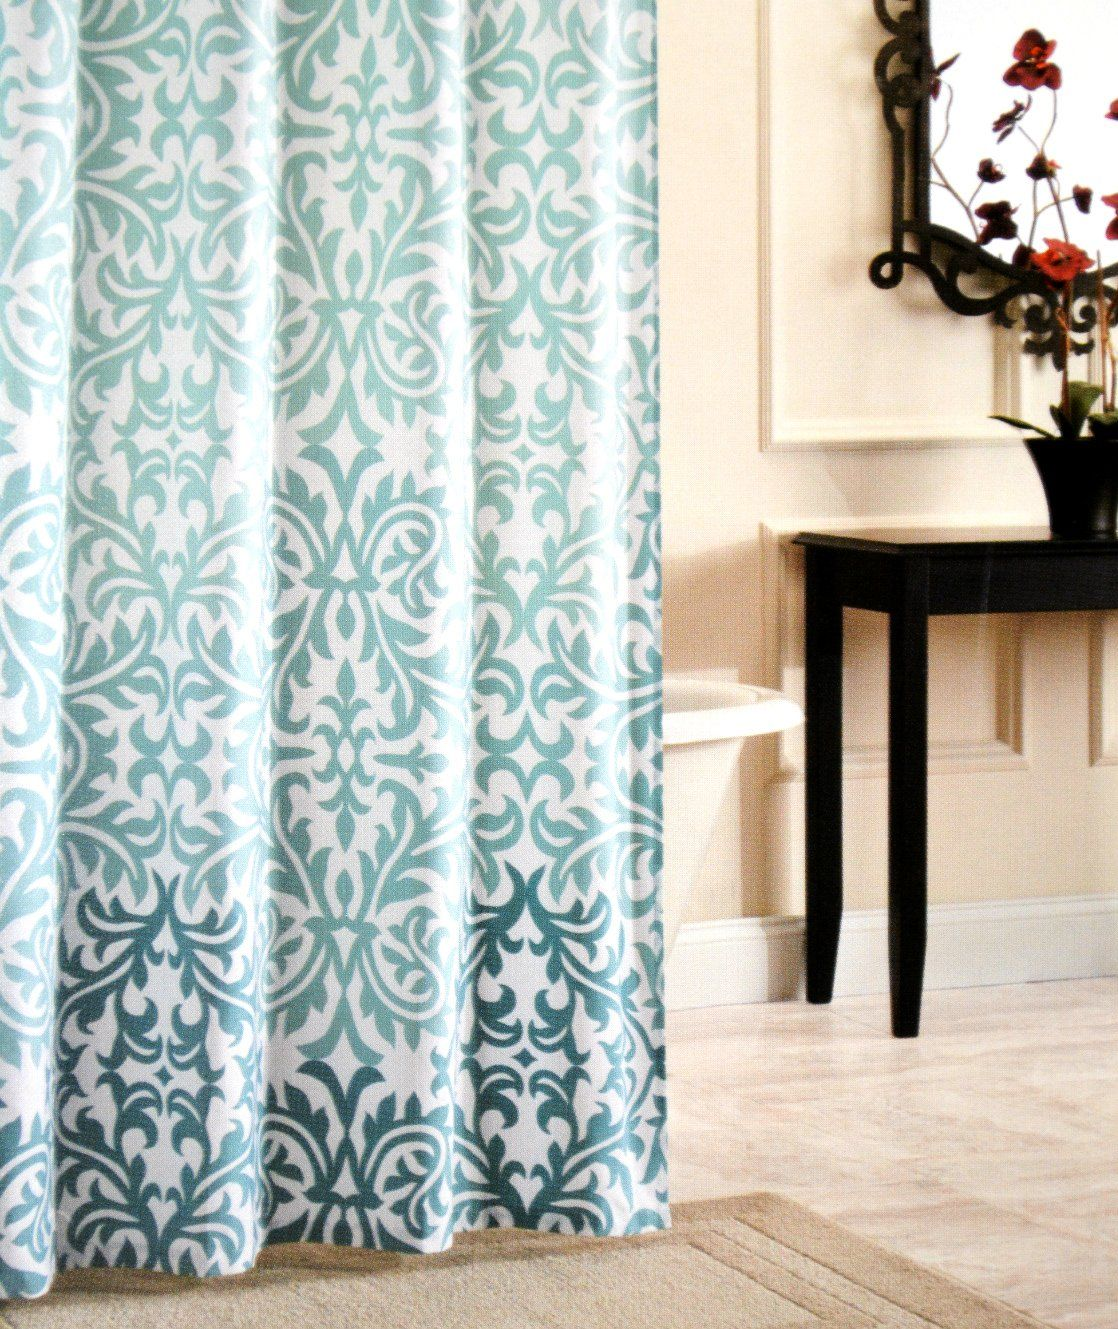 Nicole Miller Fabric Shower Curtain Damask Ombre Aqua Blue Teal Large  Floral Medallion 72 Inch By